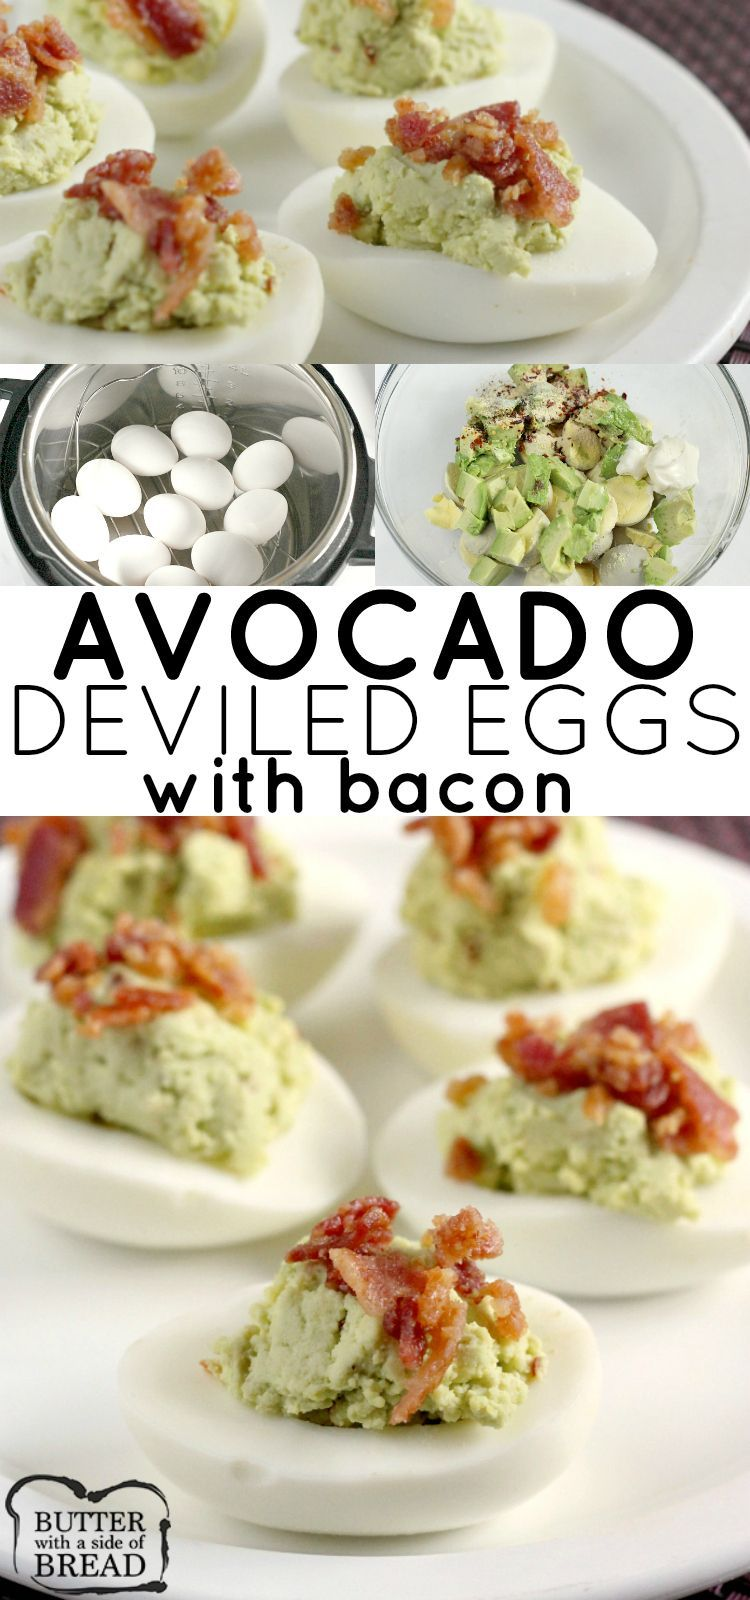 Bacon Avocado Deviled Eggs made with all the classic deviled egg ingredients, plus avocado! Creamy, flavorful and the best part is they have bacon on top. These are THE BEST deviled eggs you'll ever try! BUTTER WITH A SIDE OF BREAD